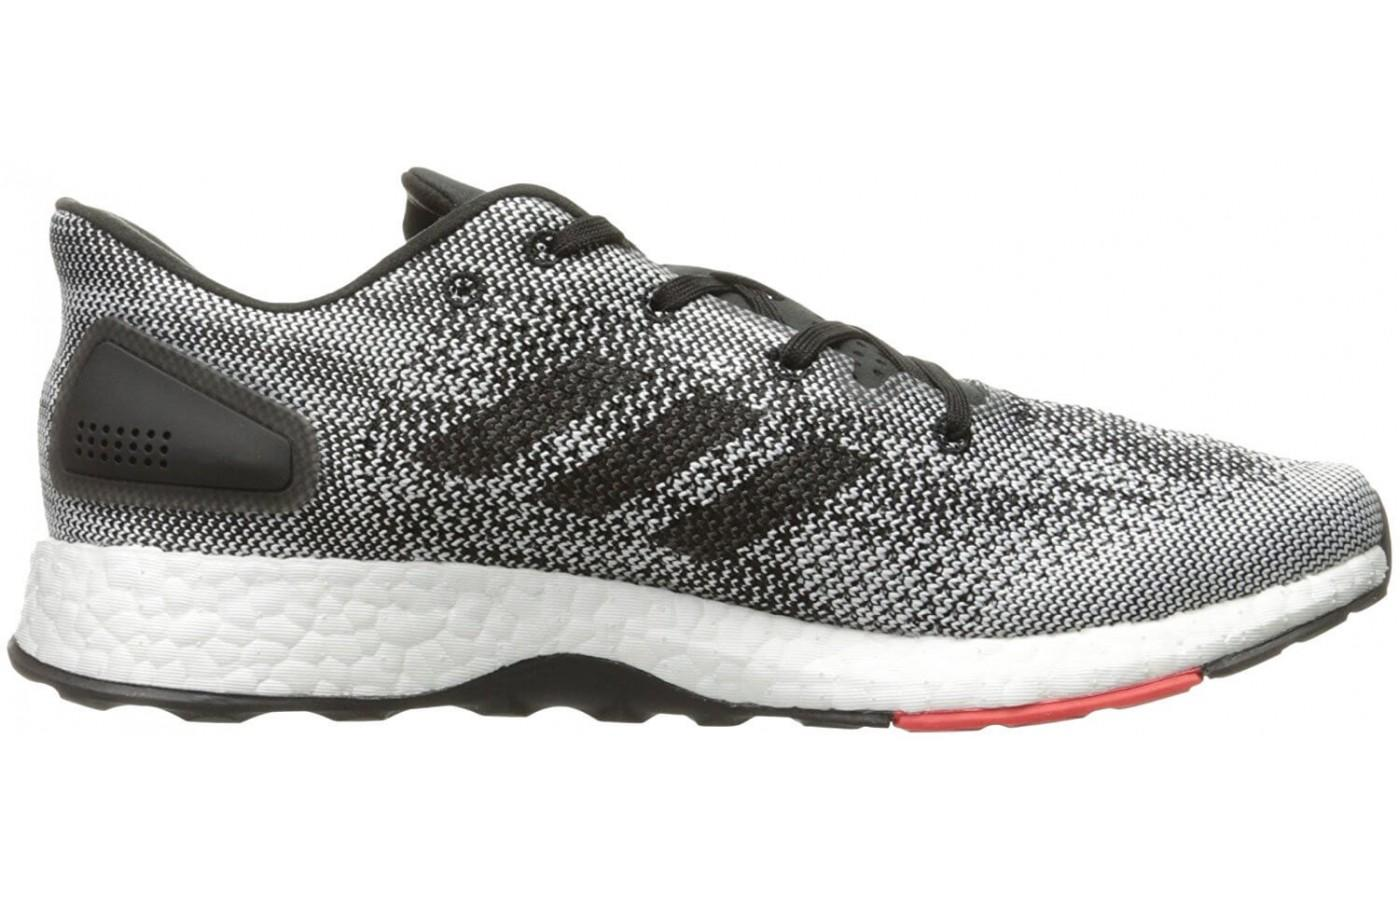 0e6ebd59a Adidas Pureboost DPR. Neutral coloring make this a classically good looking running  shoe.